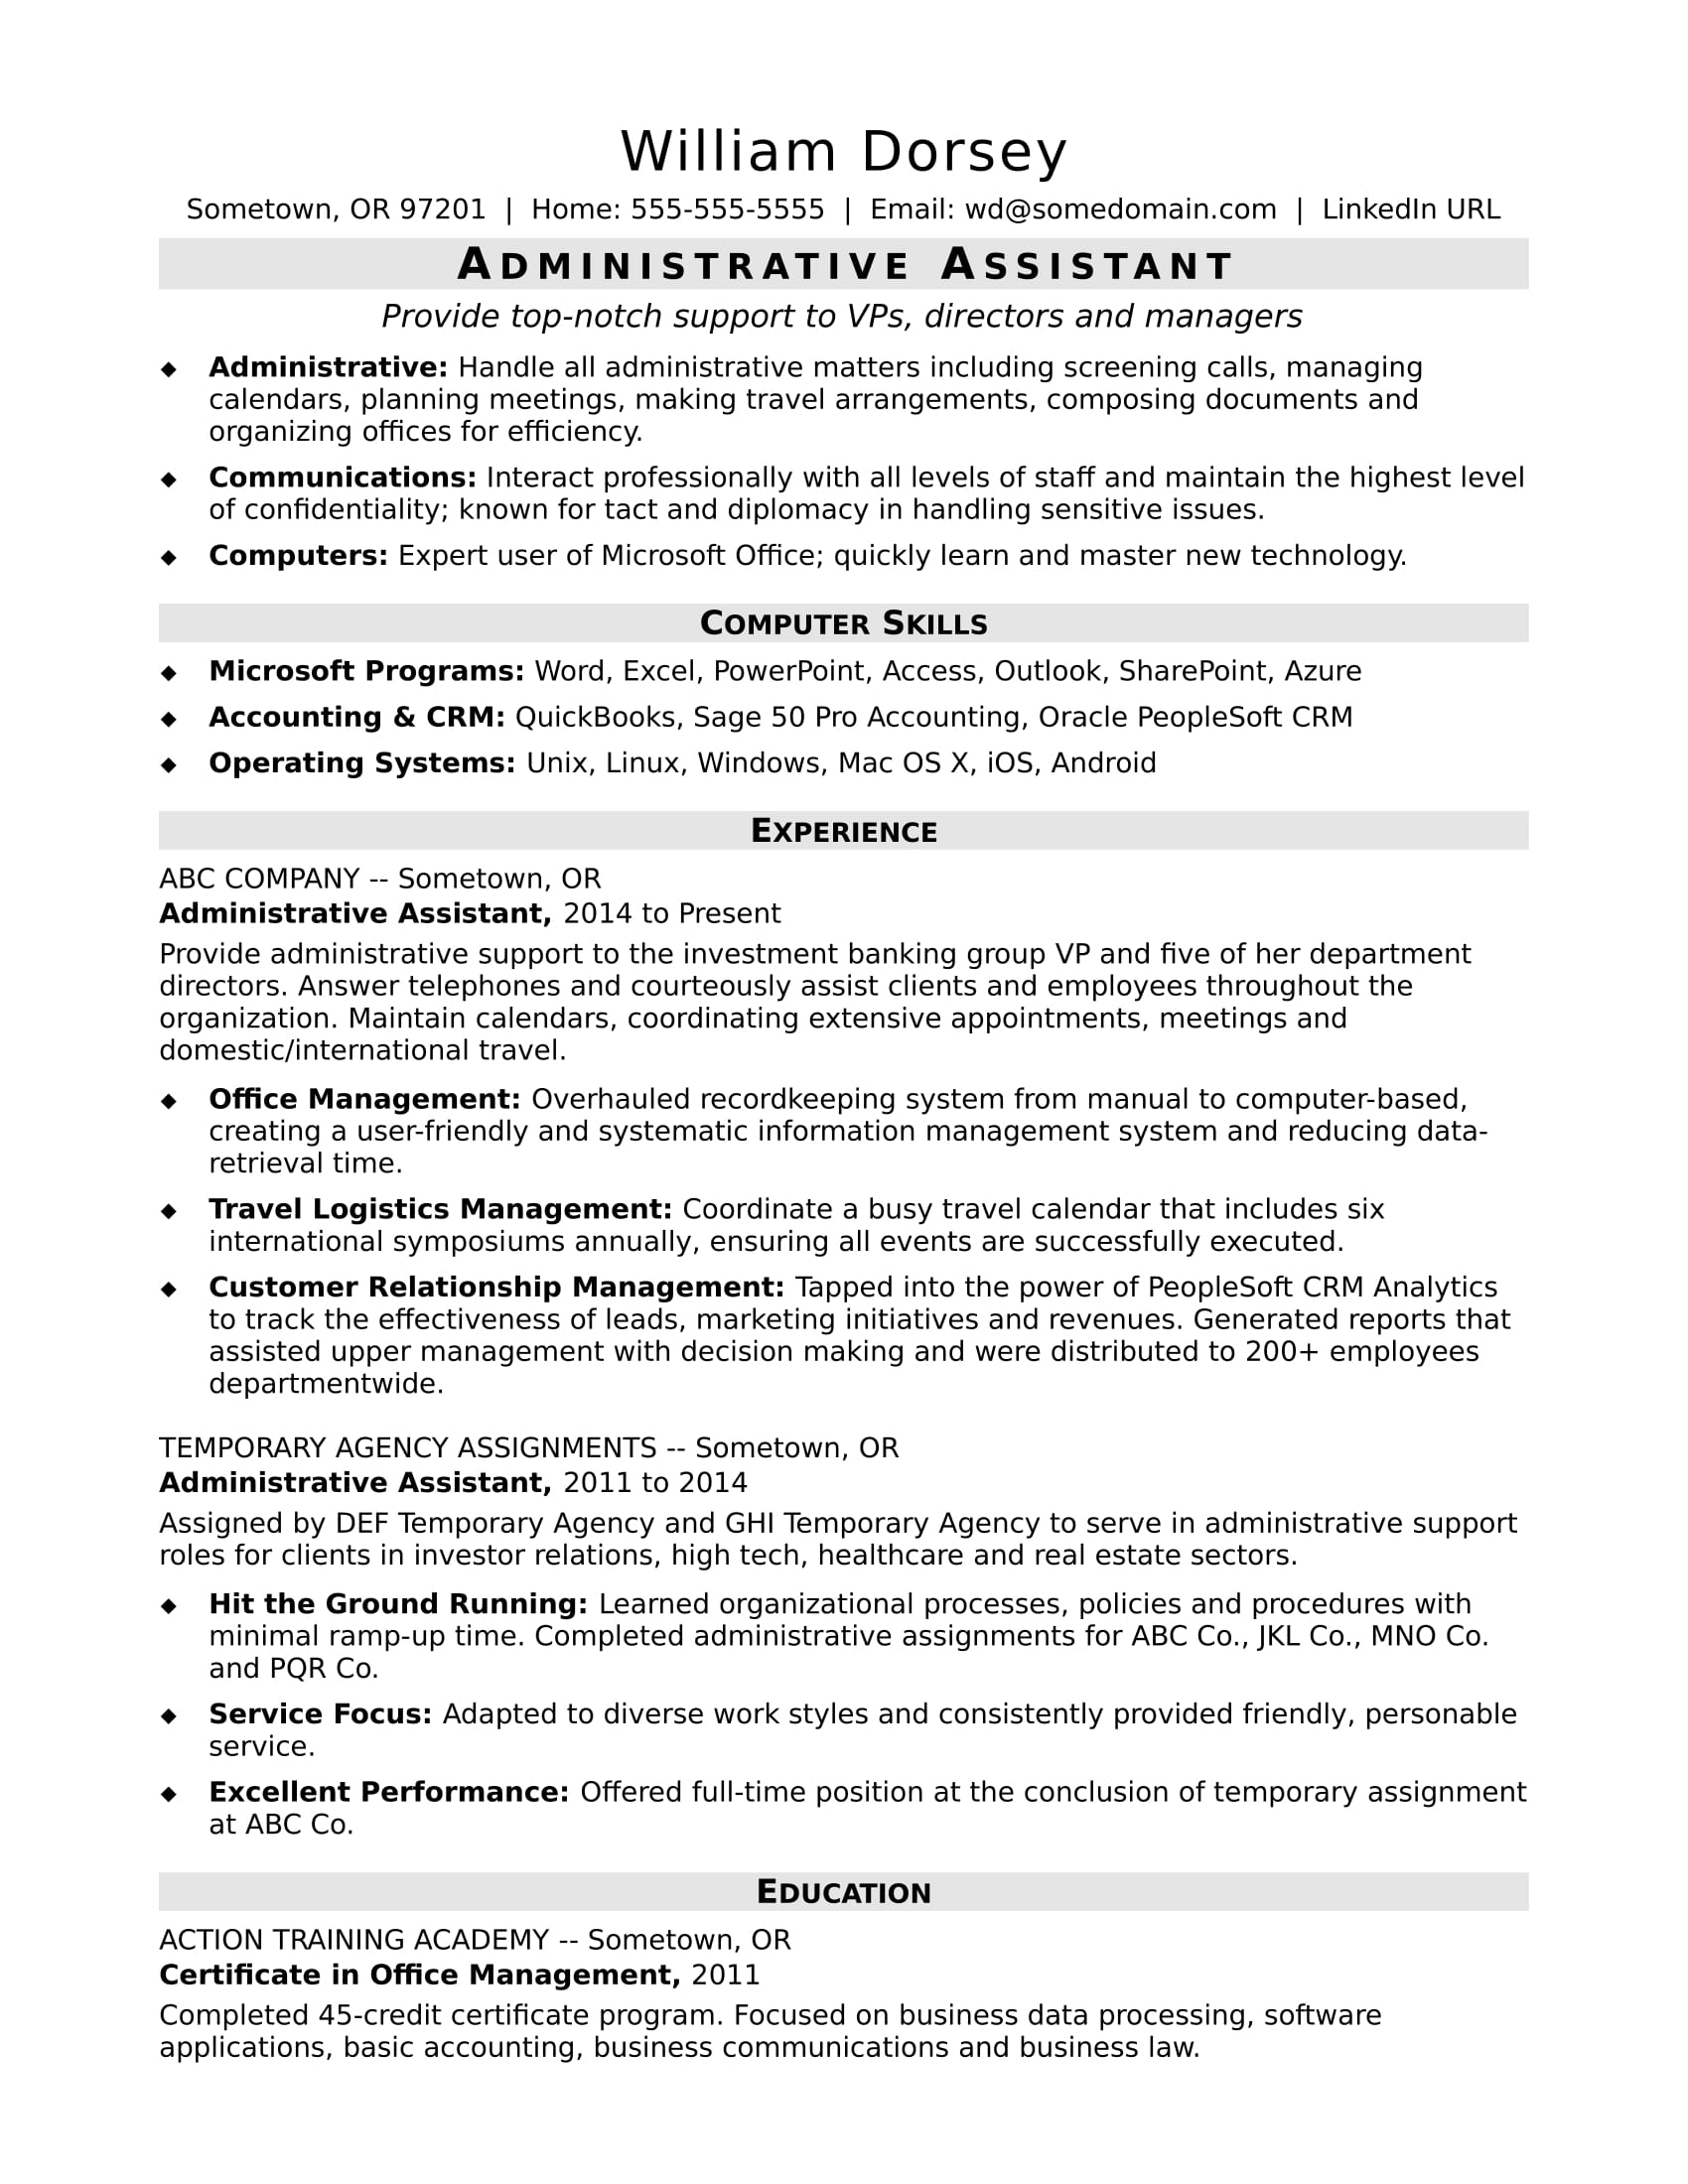 Superior Sample Resume For A Midlevel Administrative Assistant To Resume Sample Administrative Assistant